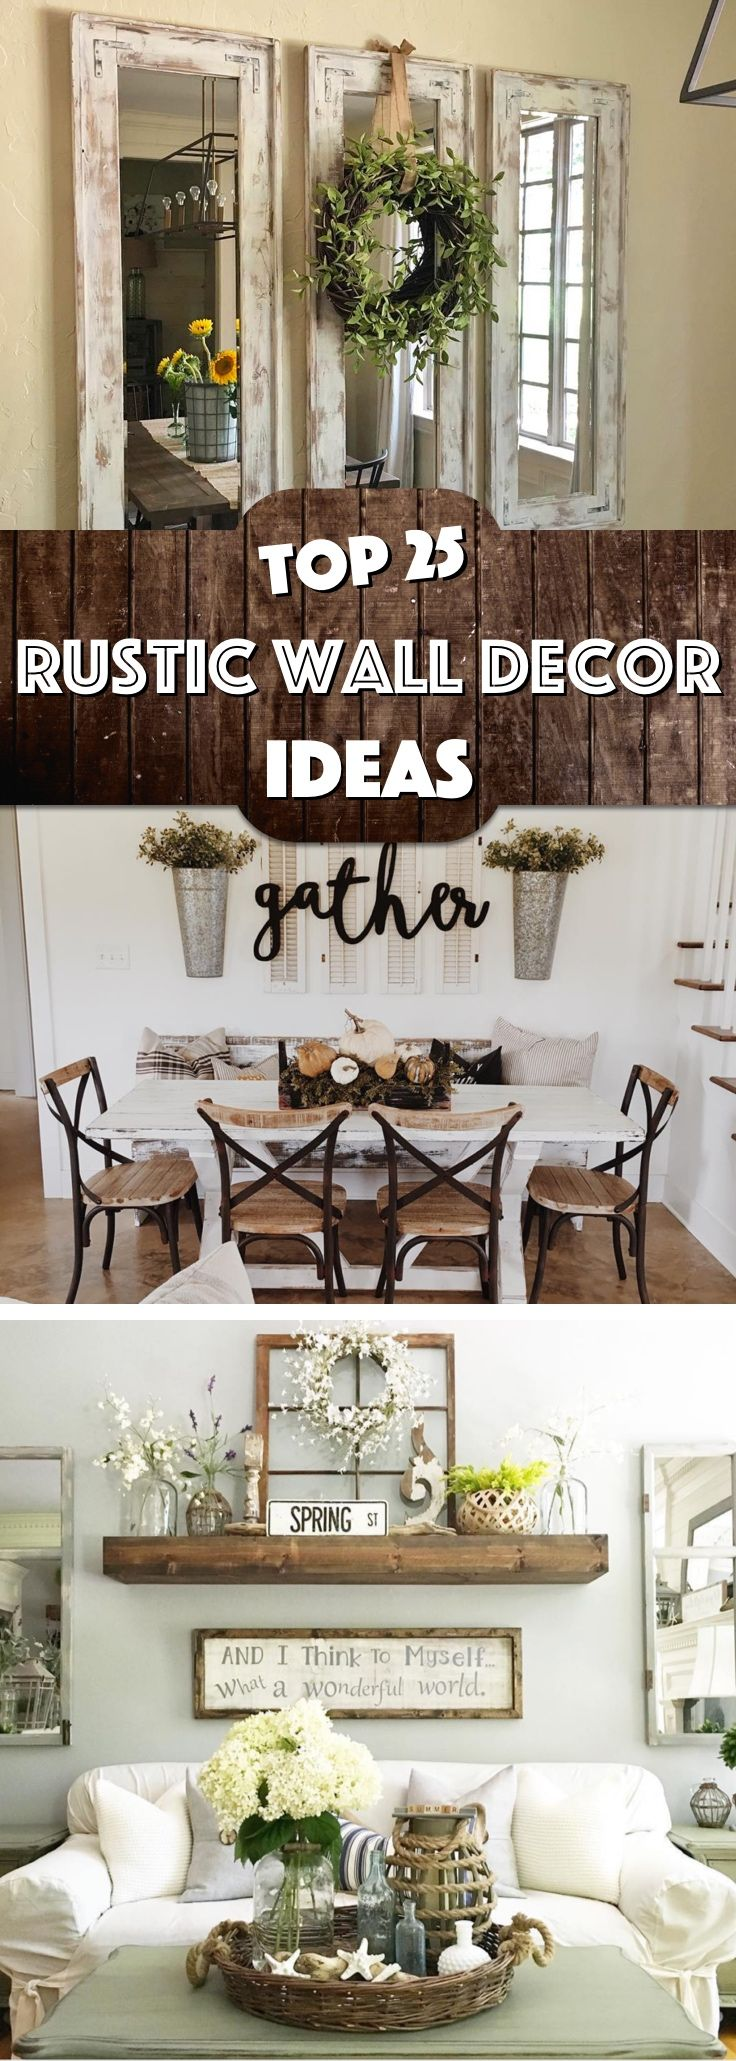 House Decors Ideas 25 Must Try Rustic Wall Decor Ideas Featuring The Most Amazing